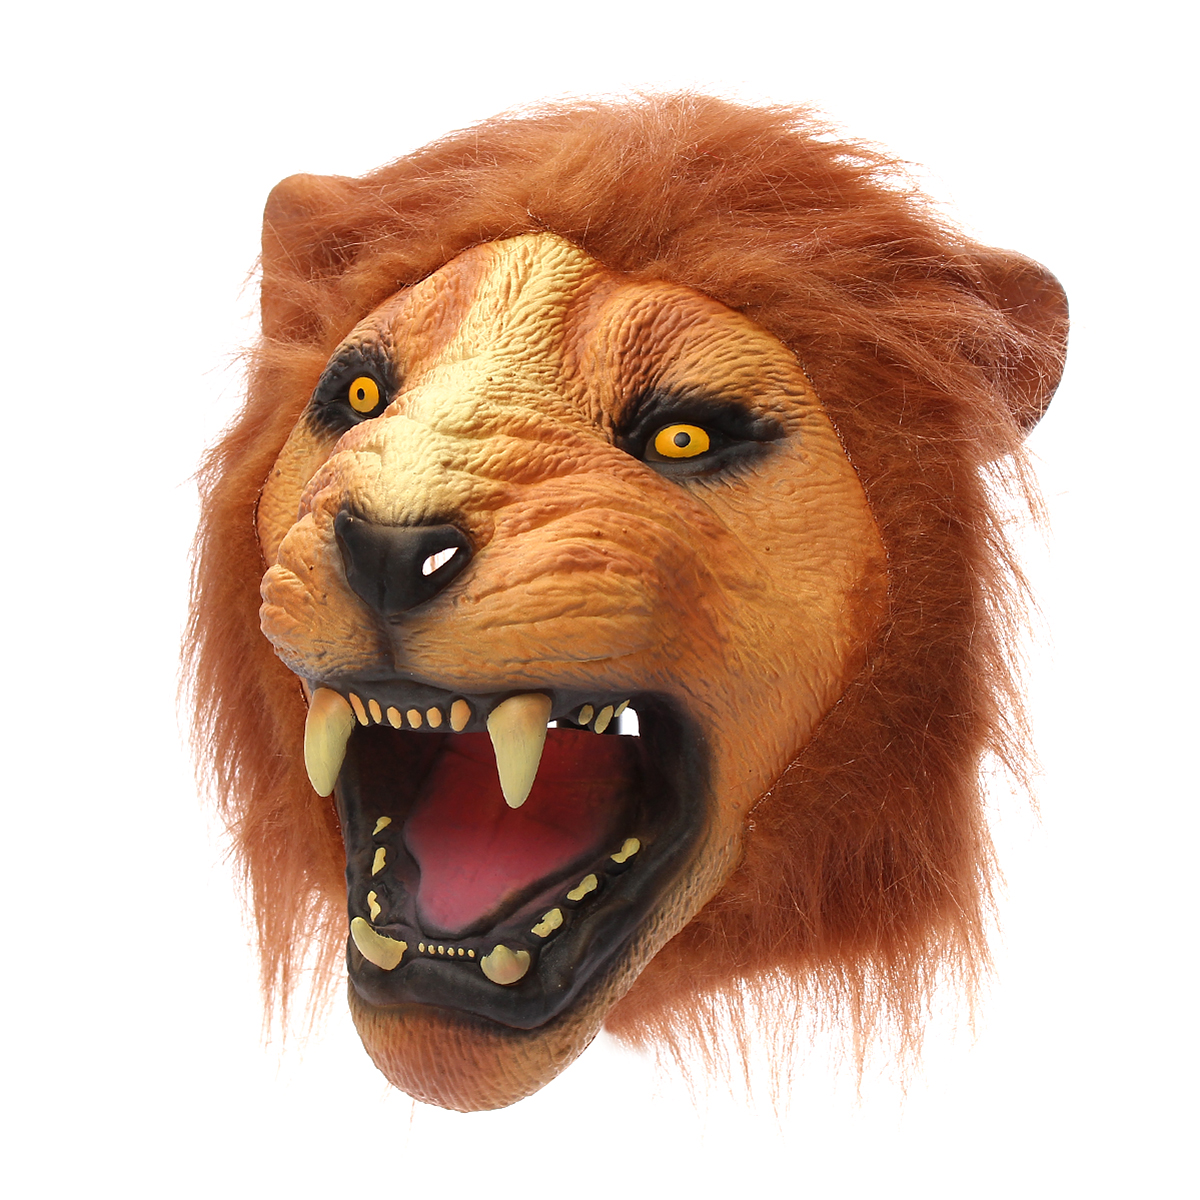 Lion Head Mask Creepy Animal Halloween Costume Theater Prop Latex Party Toy